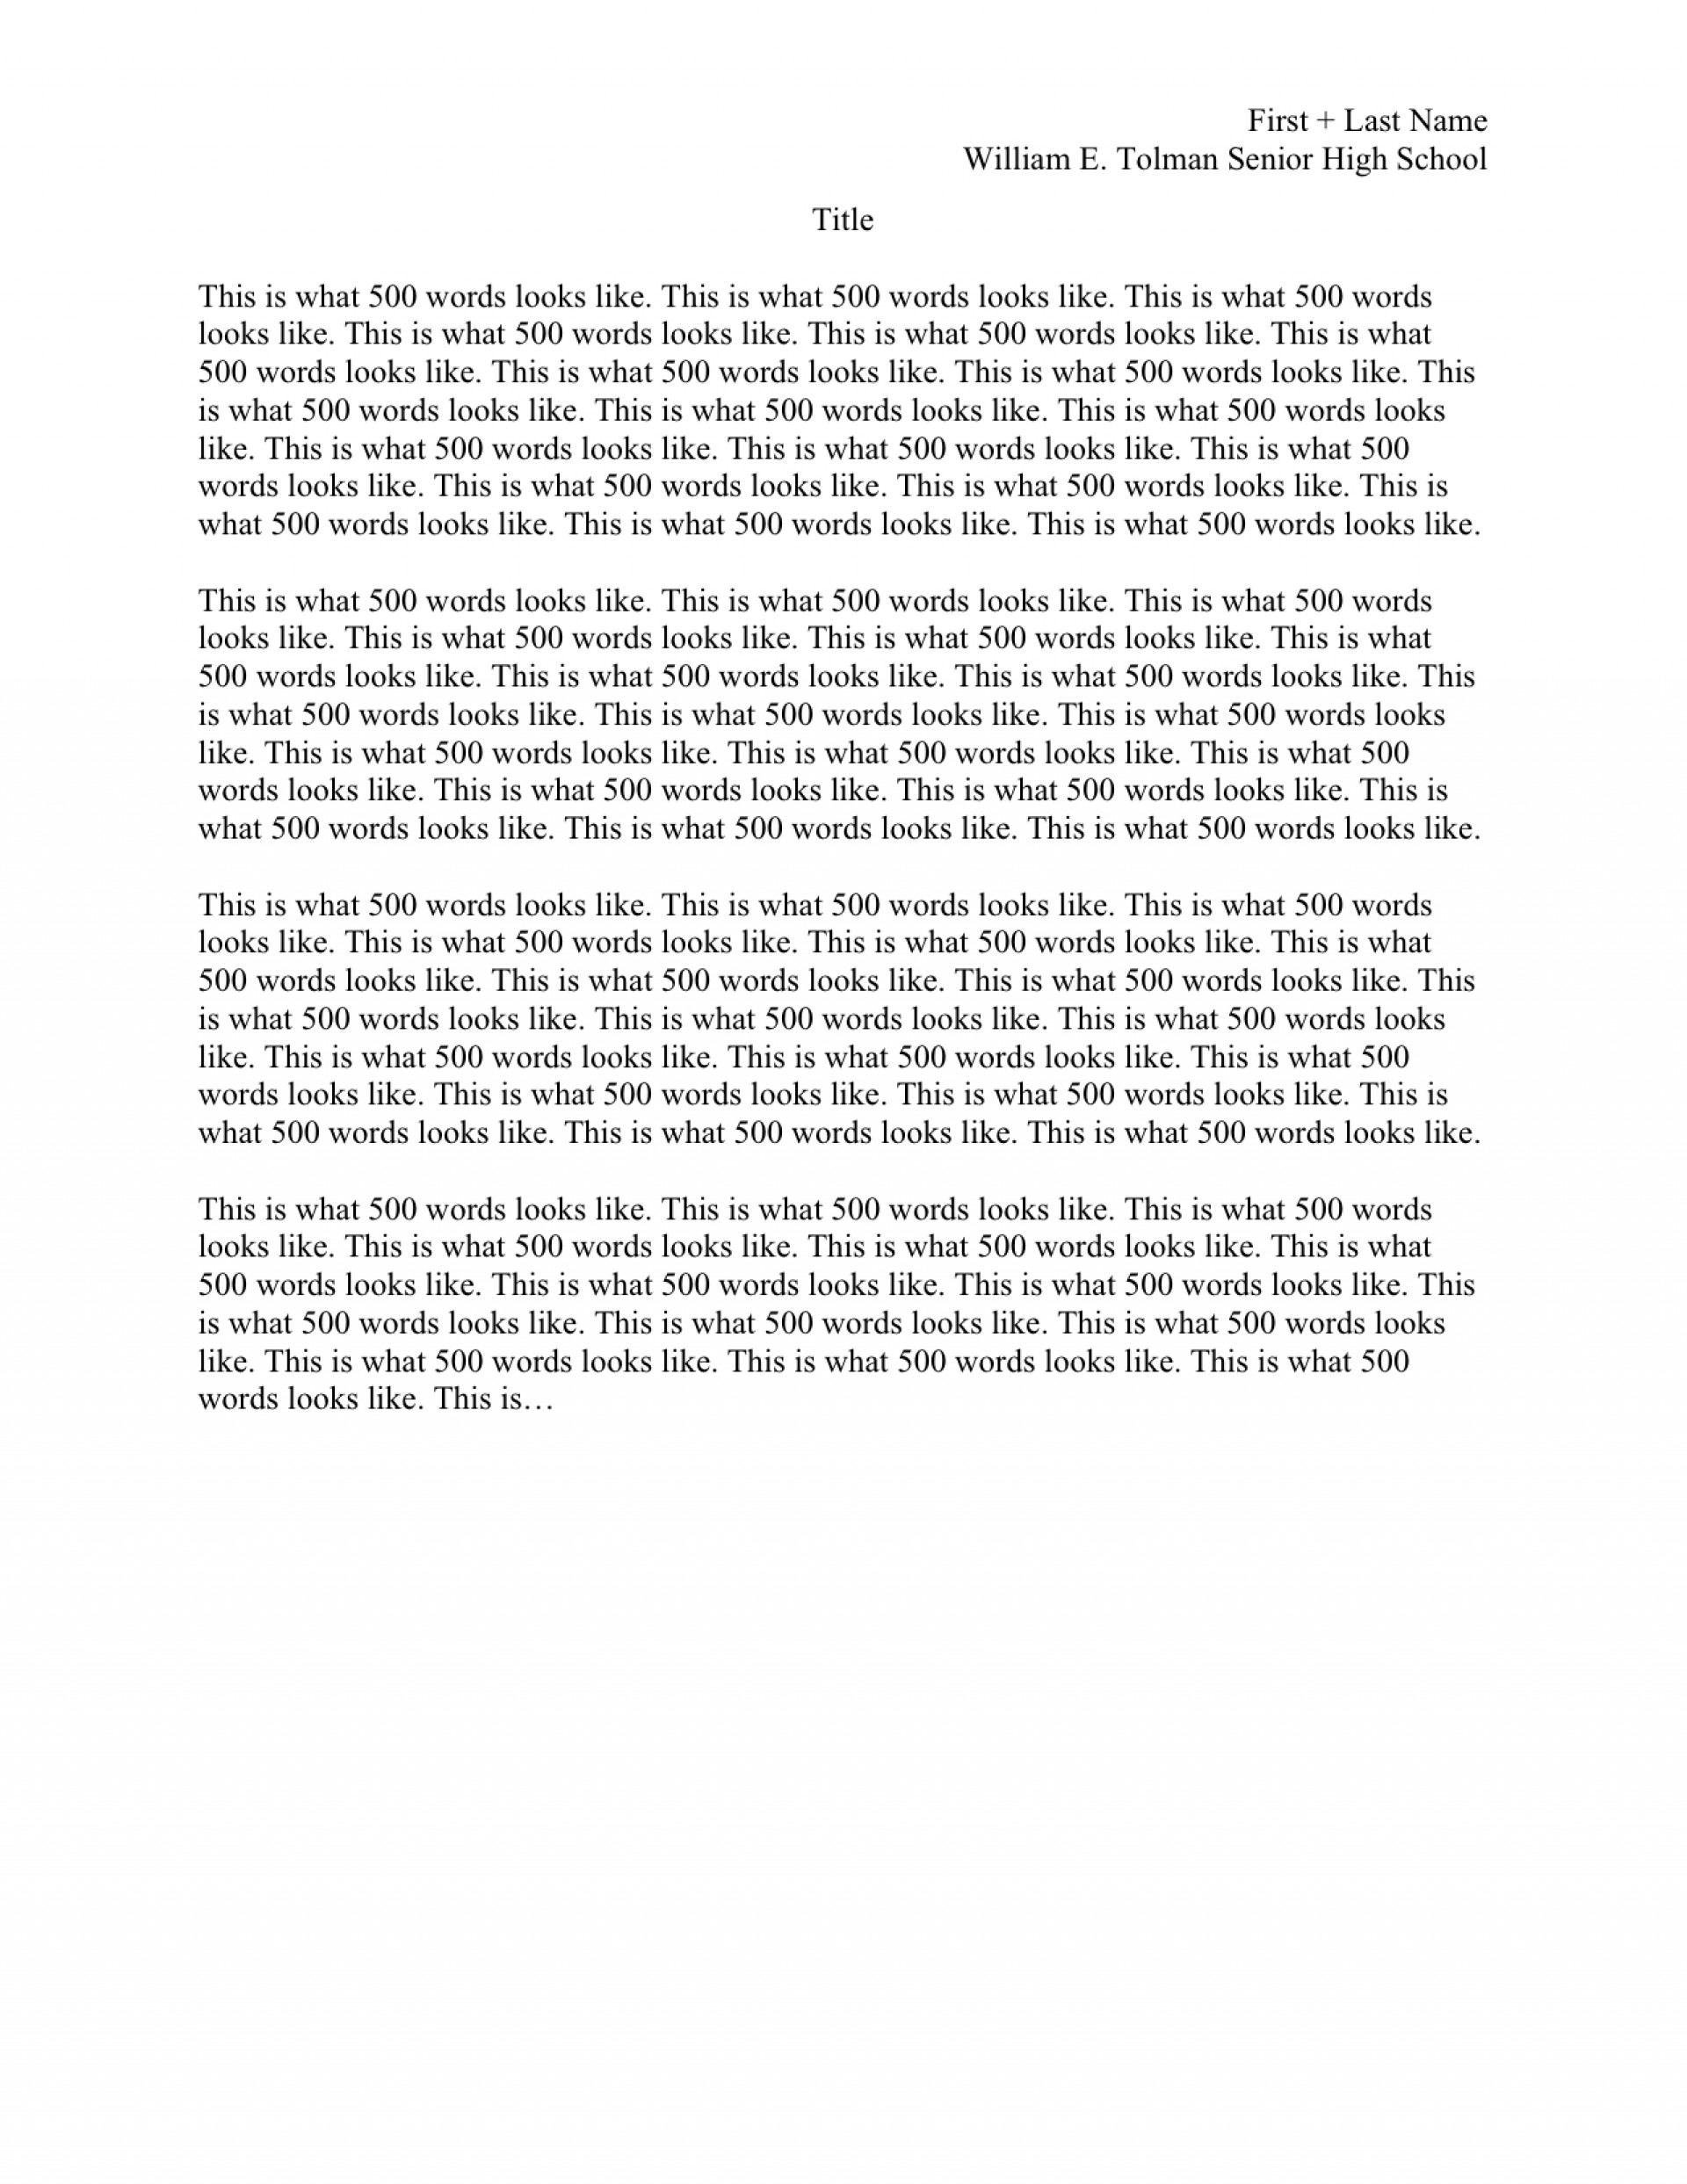 024 Personal Narrative Essay Example College Stirring Topics For Grade 7 Examples 6th 1920